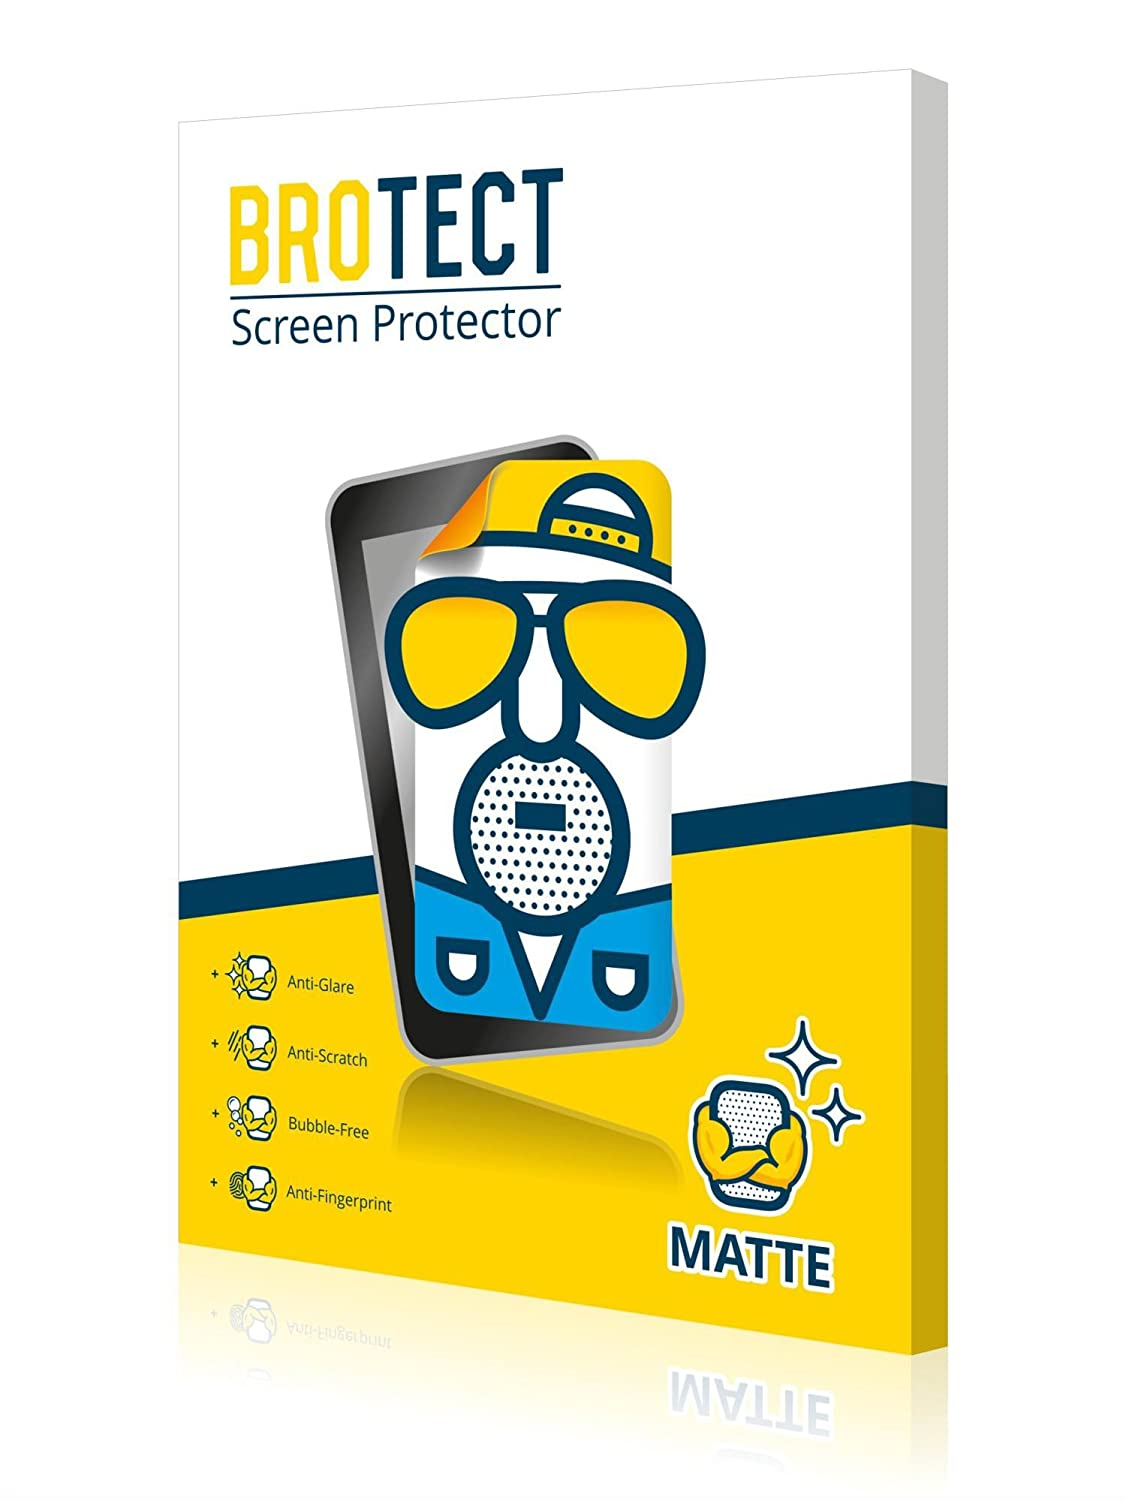 2x BROTECT Matte Screen Protector for FujiFilm X-A2, Matte, Anti-Glare, Anti-Scratch